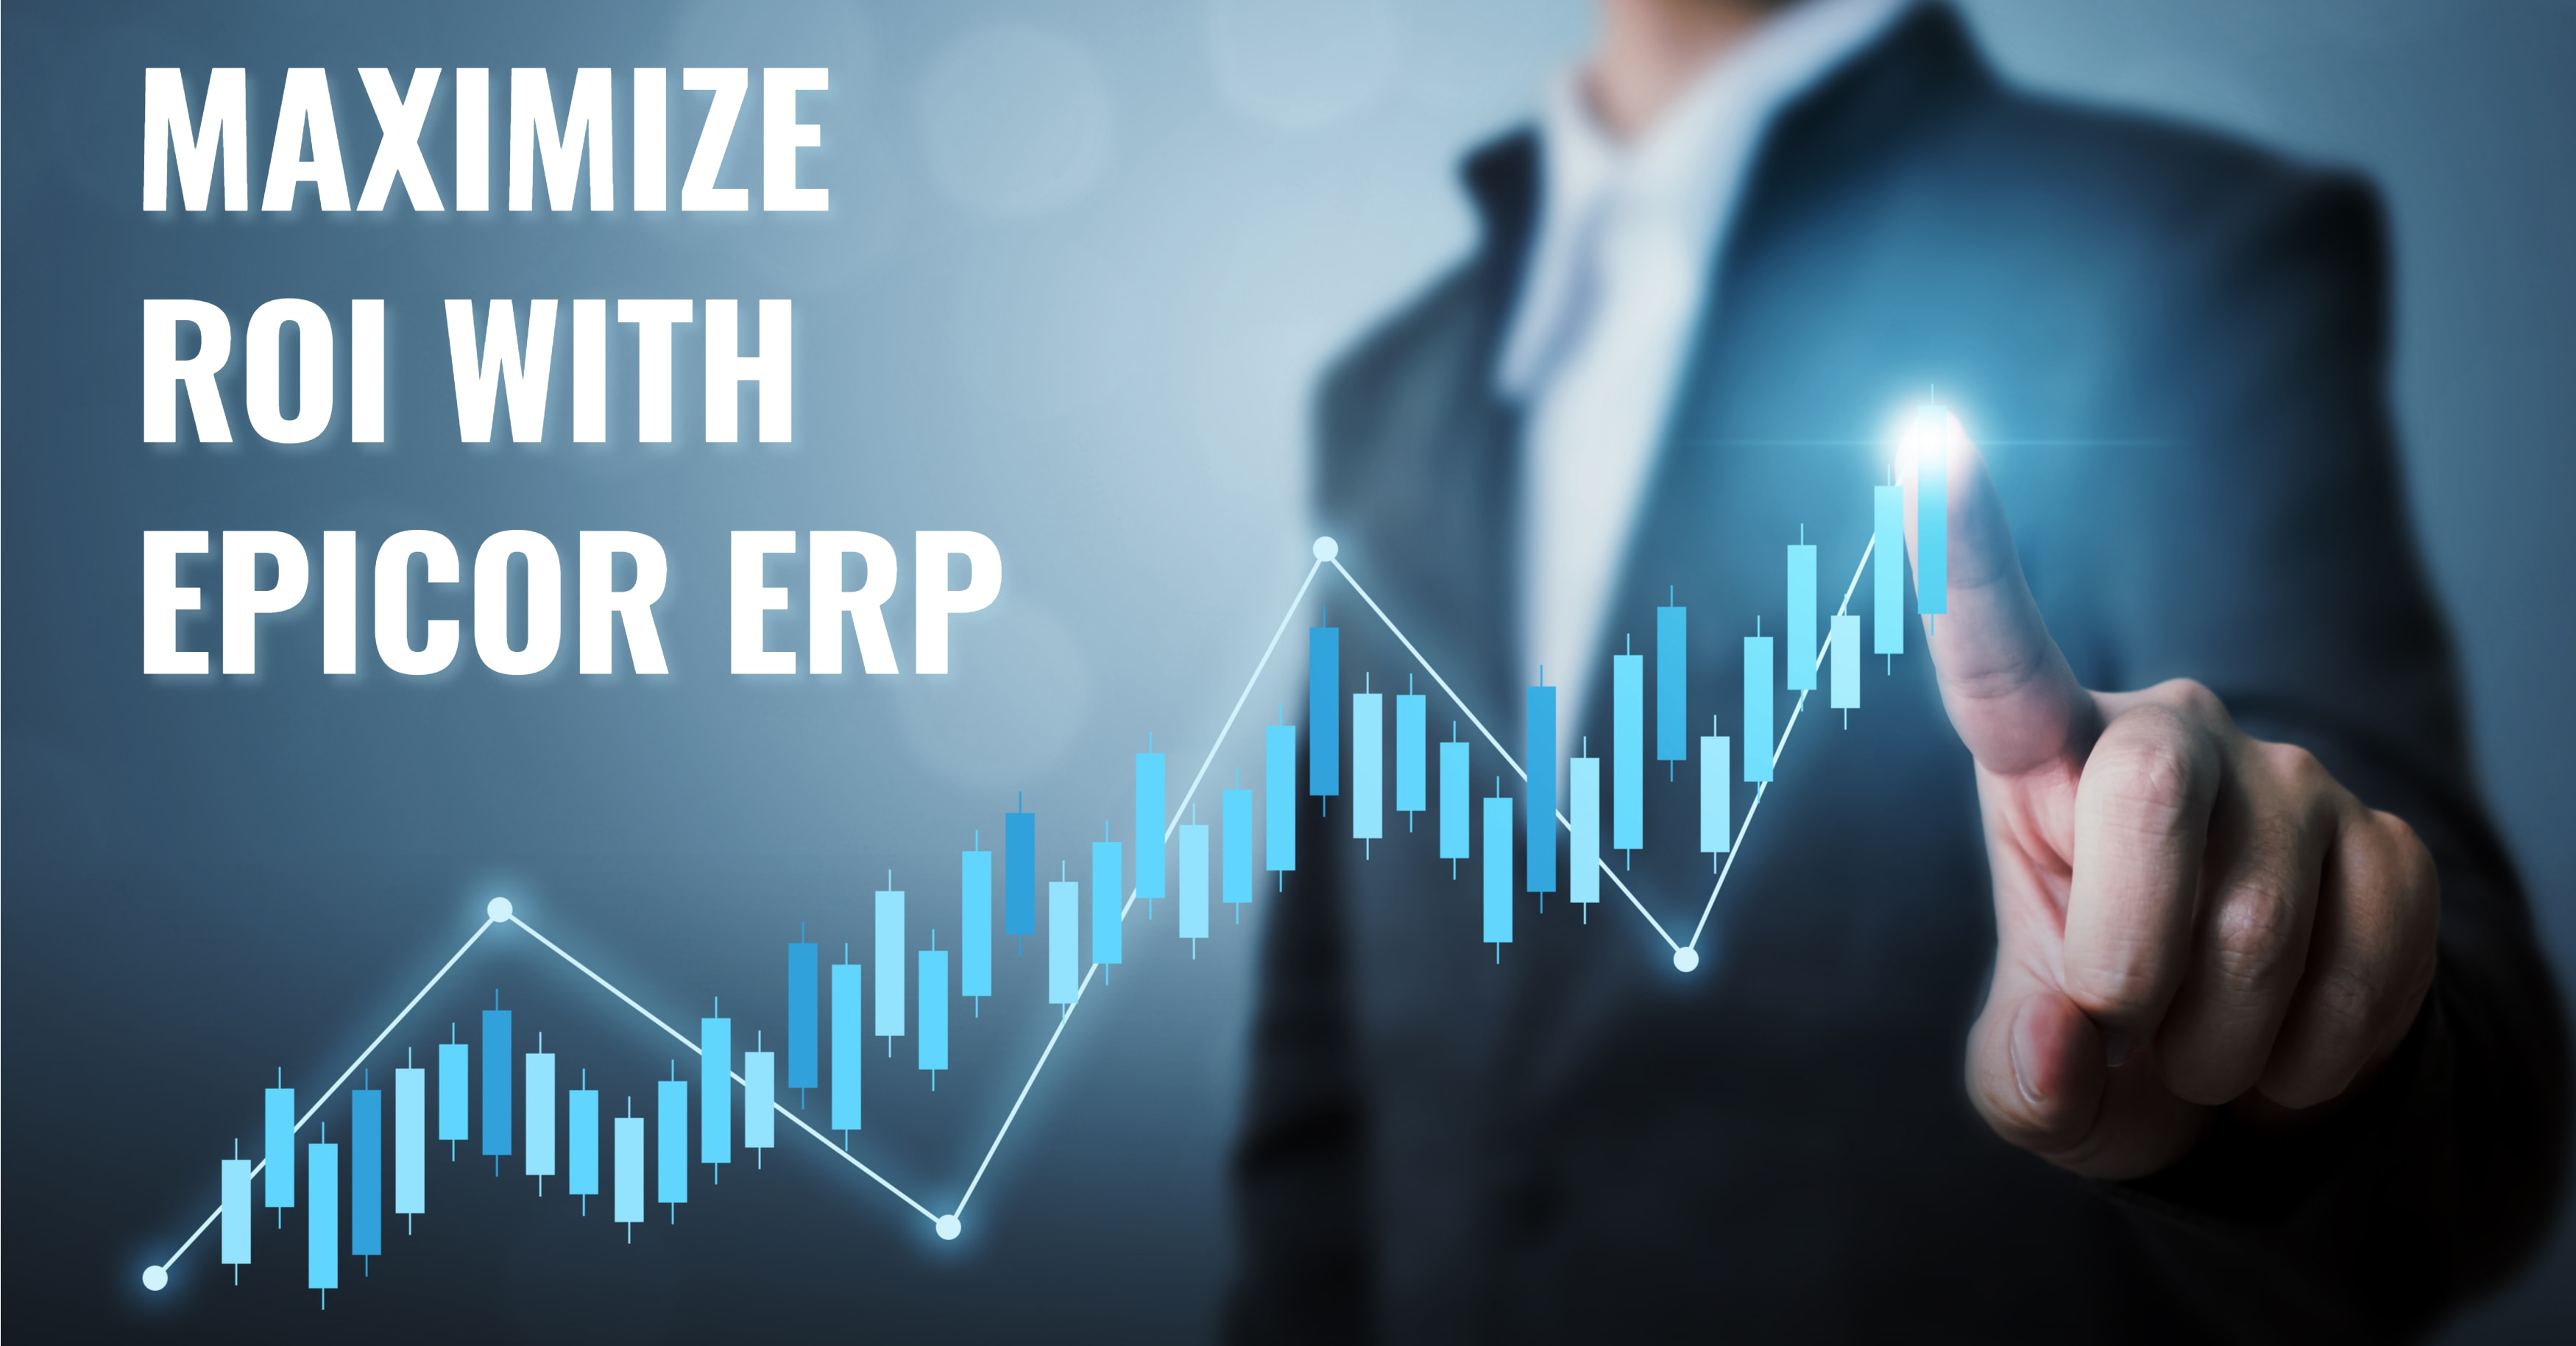 How Does Epicor ERP Generate 264% ROI?